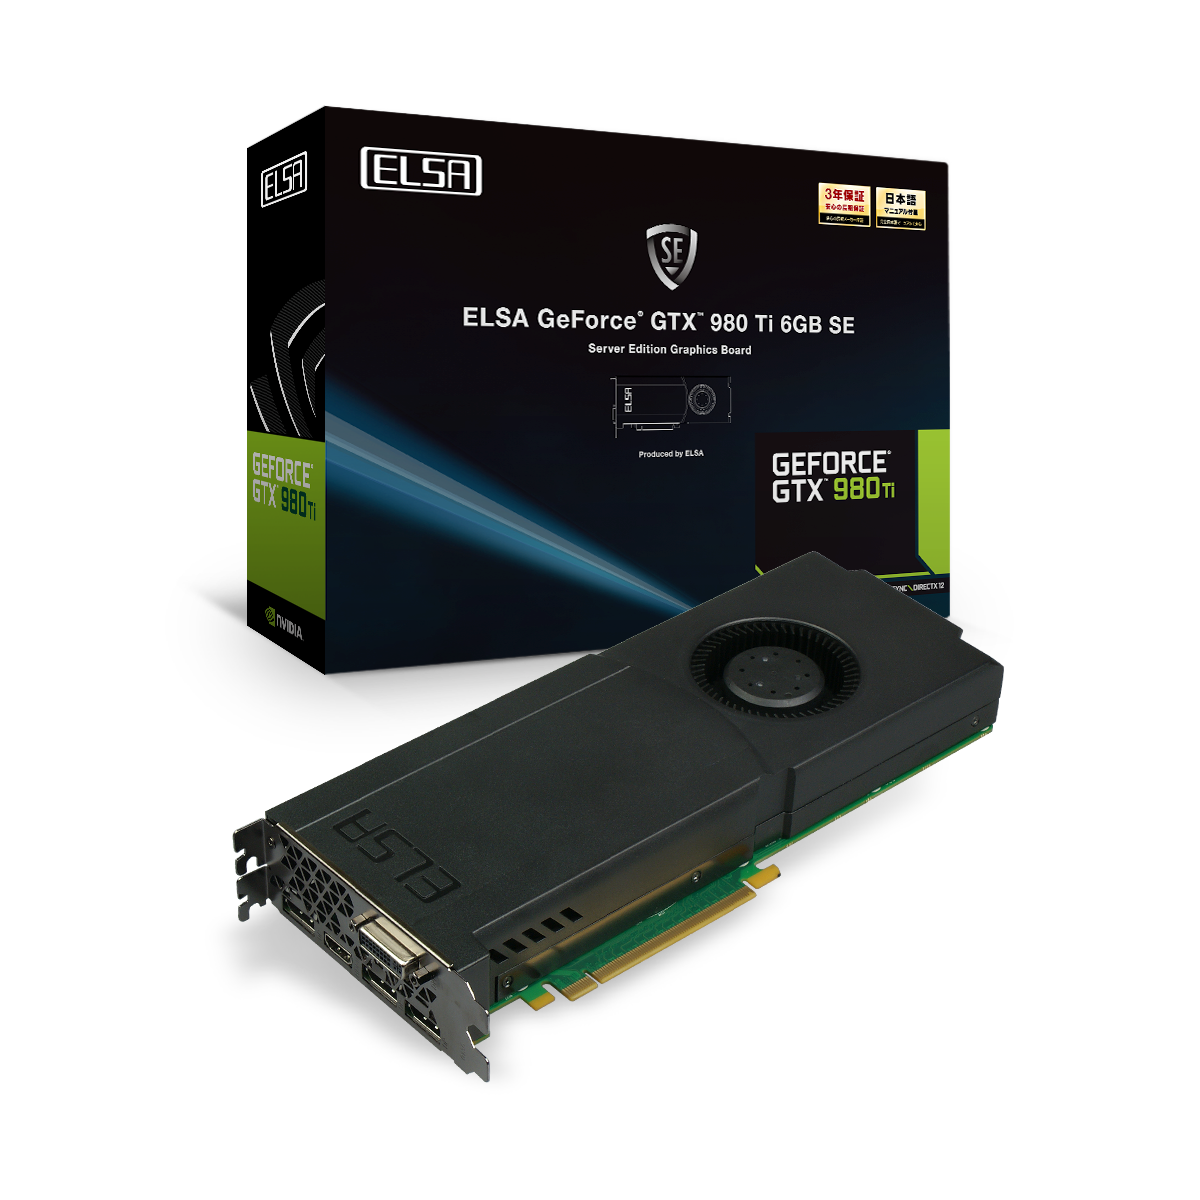 elsa_geforce_gtx_980ti_6gb_se_3qtr_box